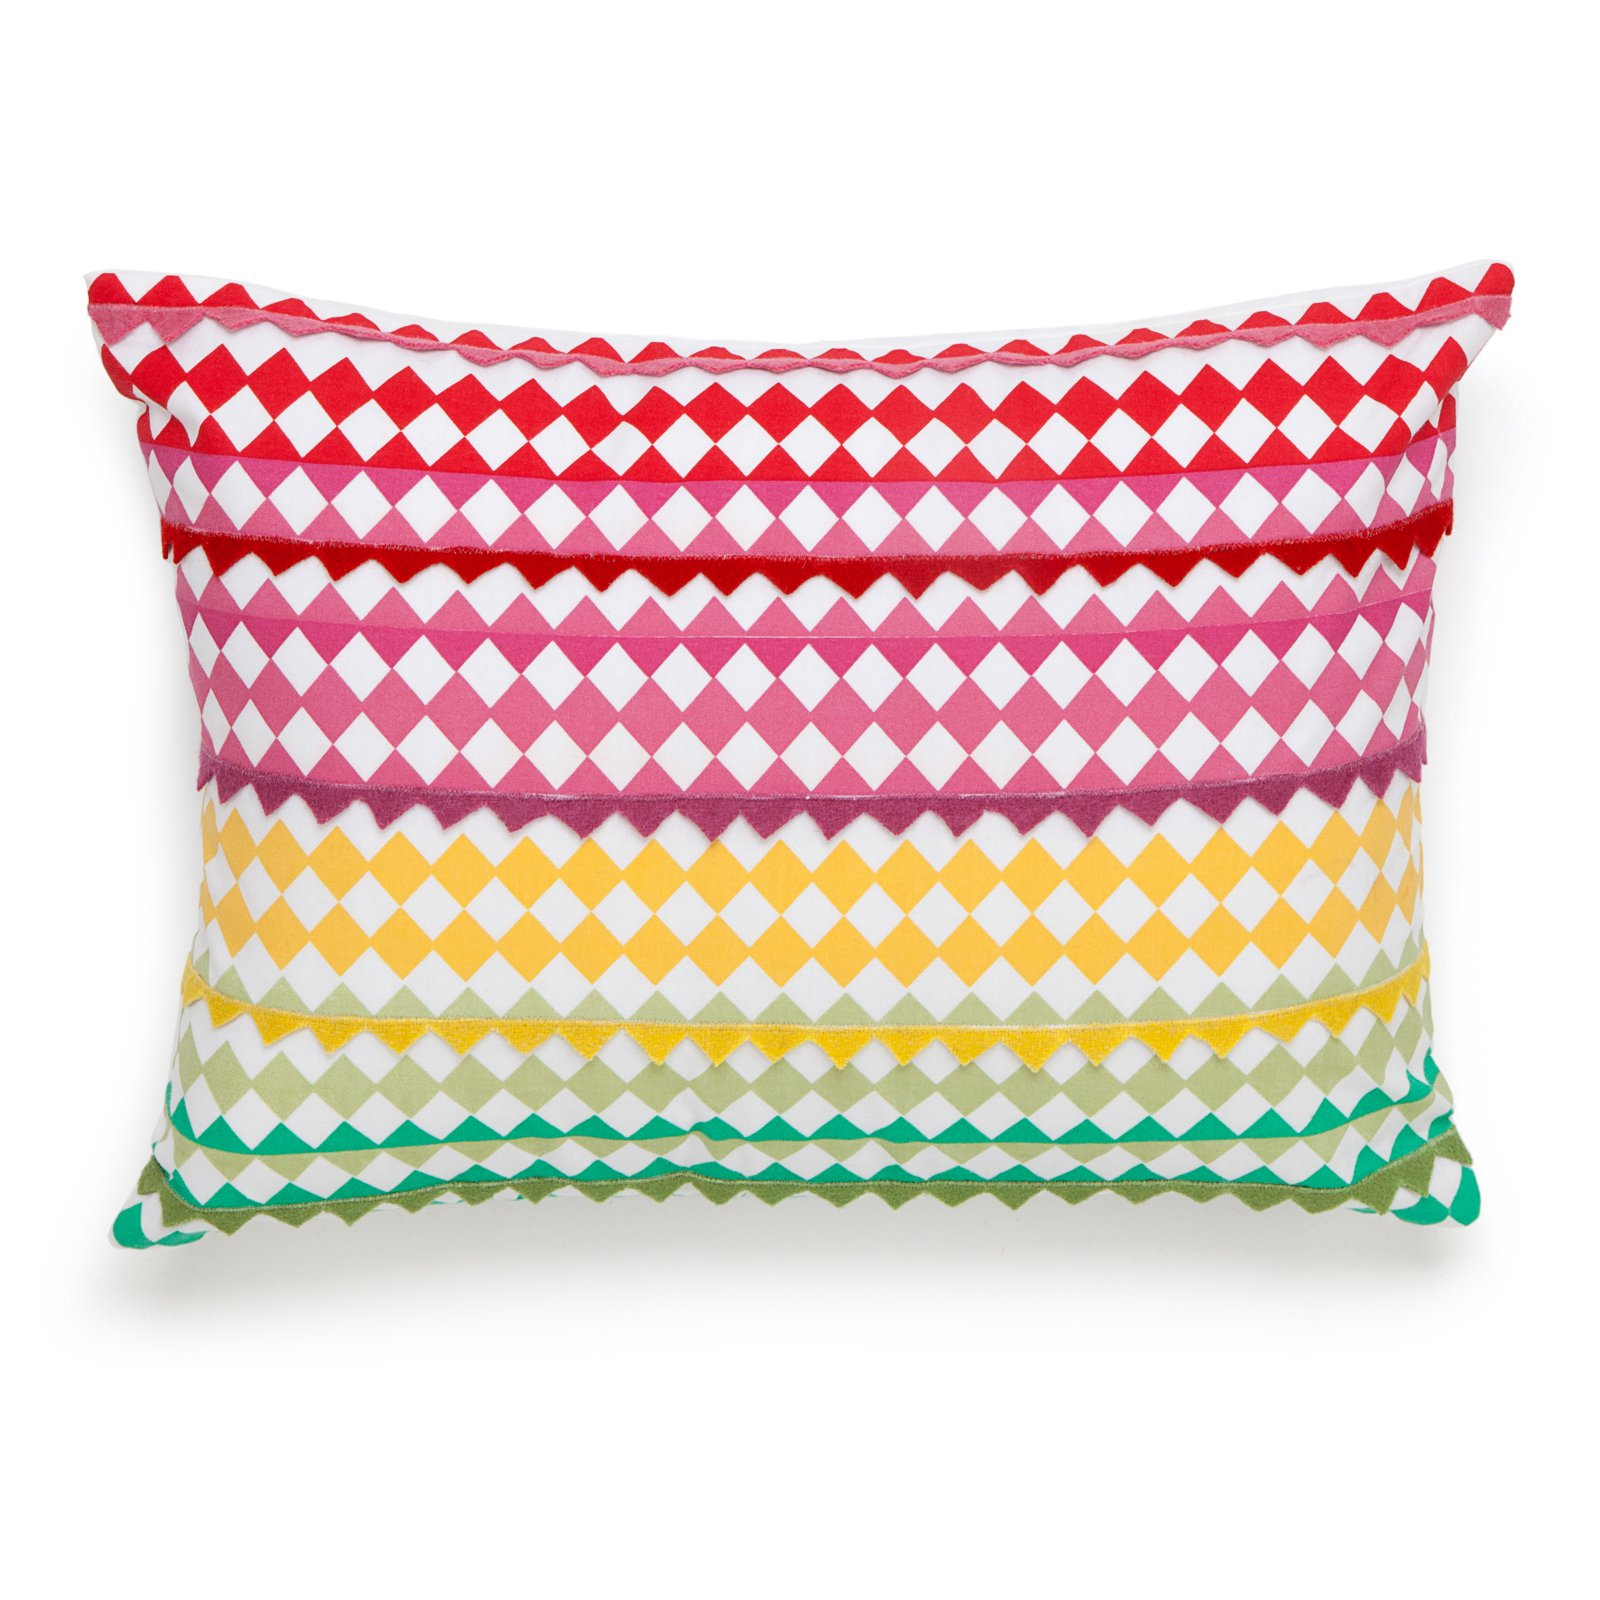 Collier Campbell English Bloom Checkered Decorative Pillow